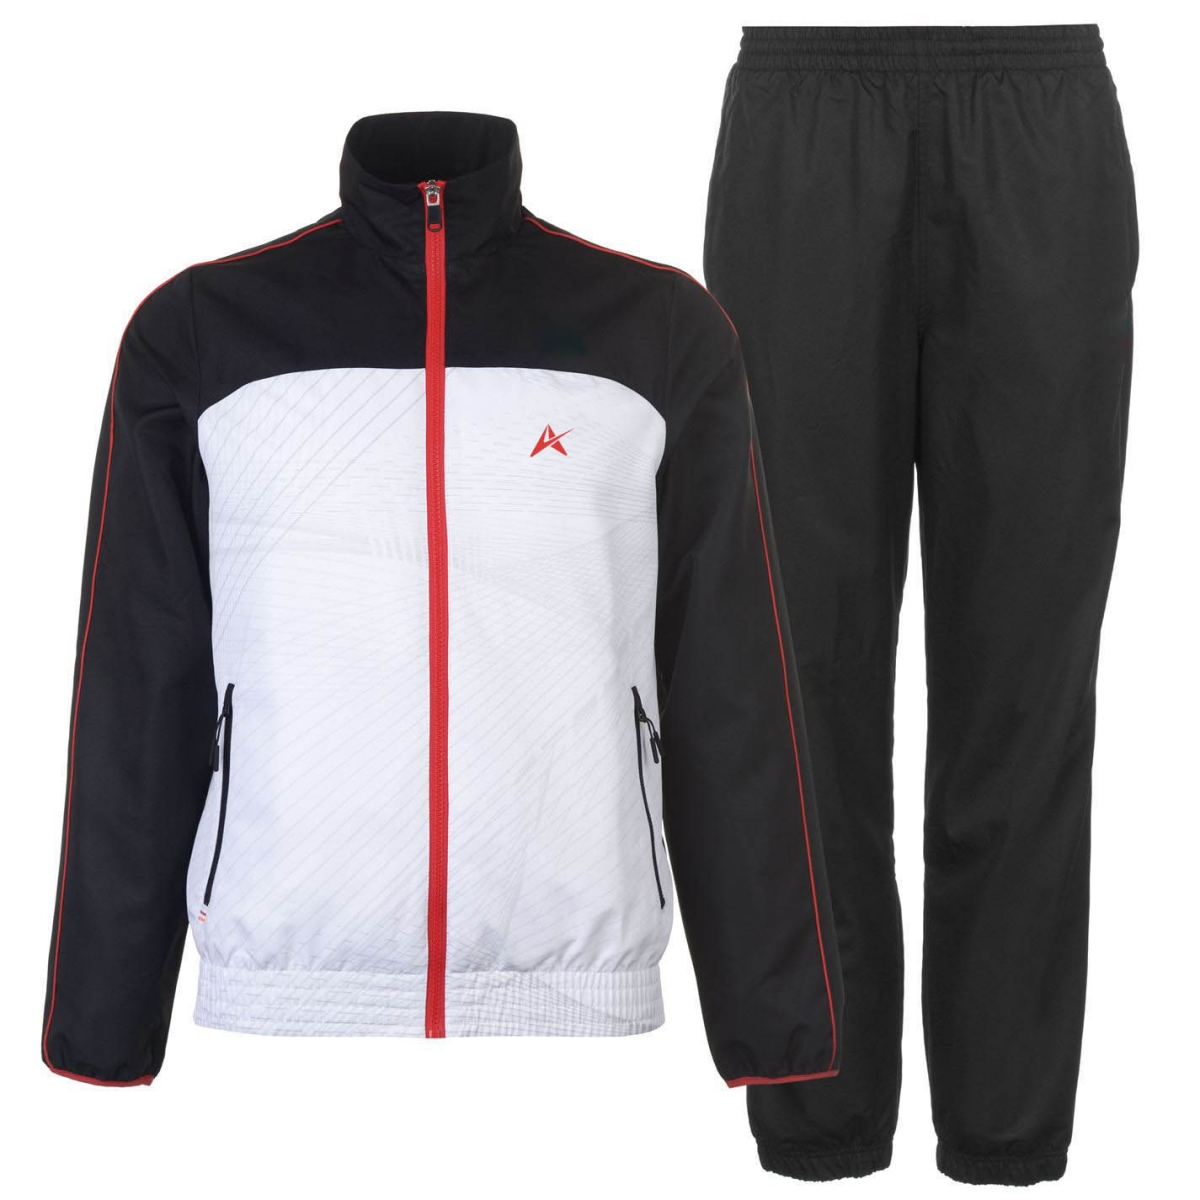 Men's Jogging Sports Suit Long Sleeve A1-509